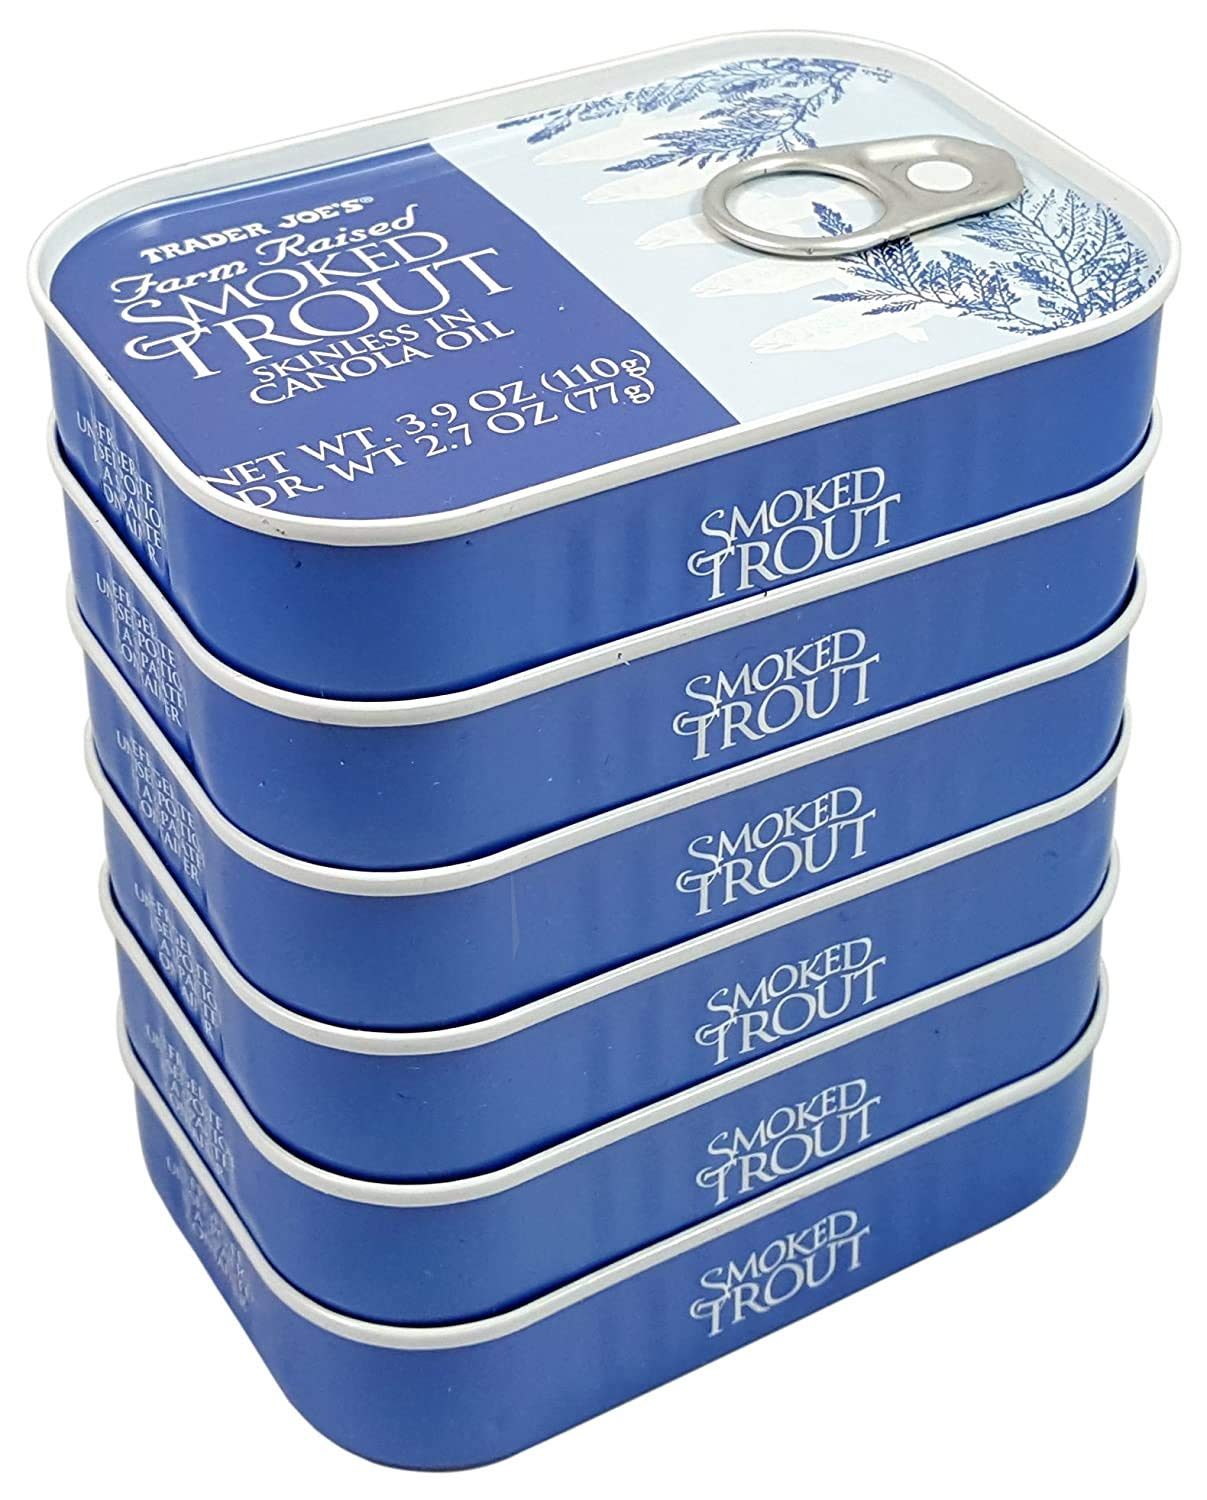 Trader Joe's Smoked Trout Fillets in Oil Skinless 3.9 oz Tin, (6 Pack)